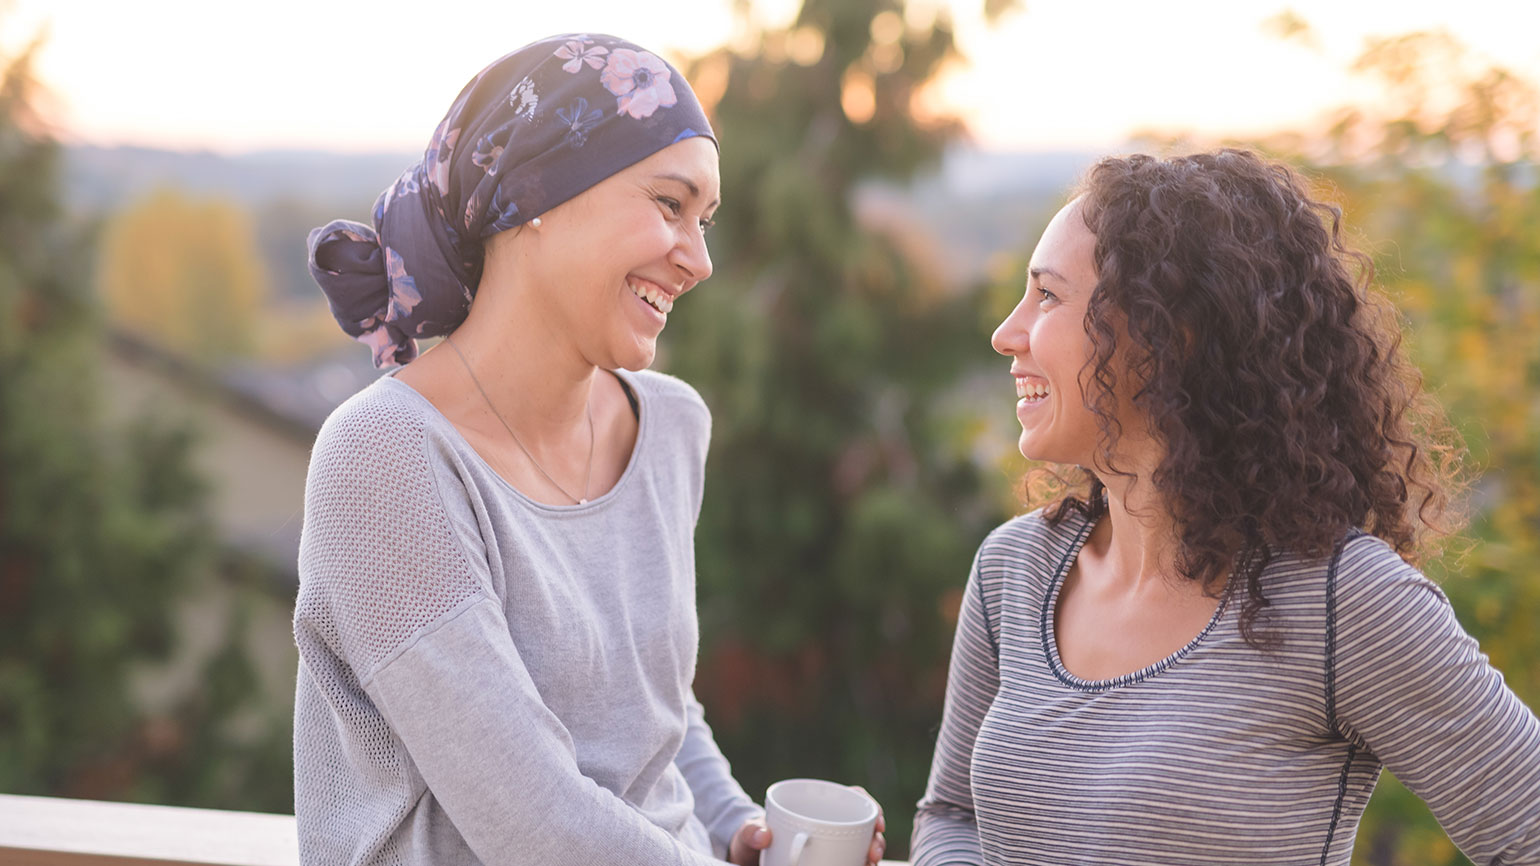 A woman with cancer receives encouragement from her friend